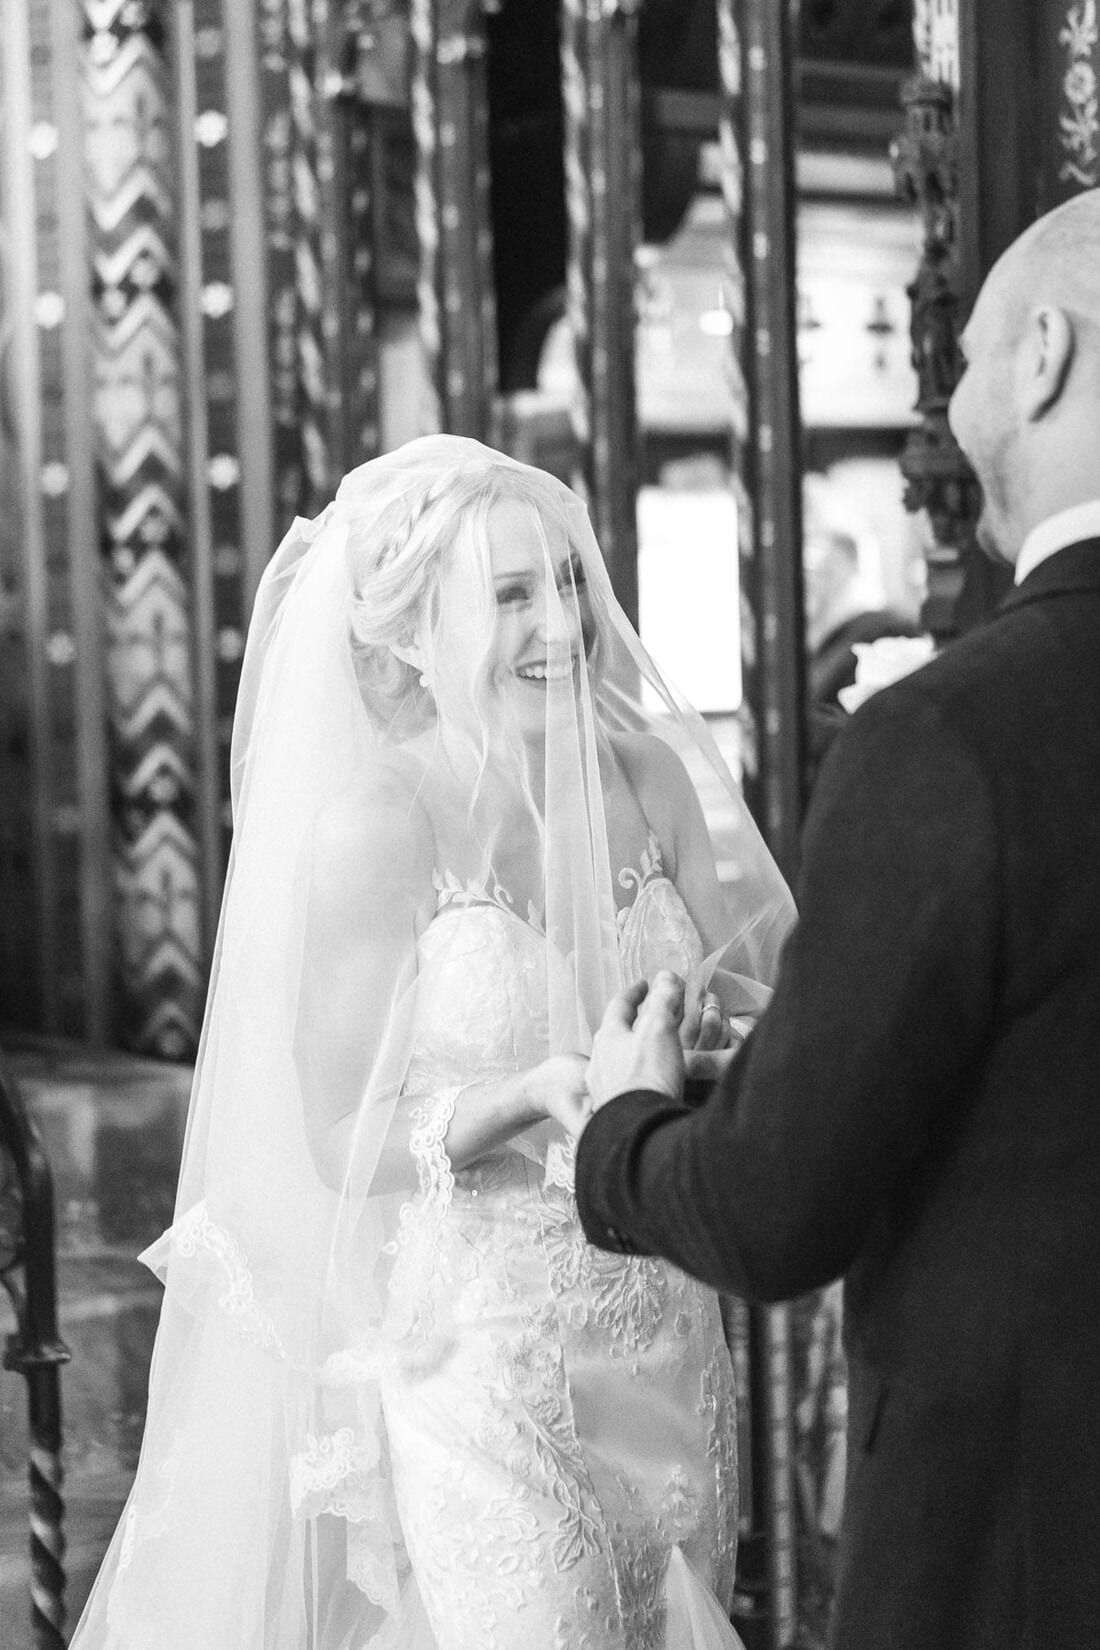 laughter from the bride as rings are exchanged